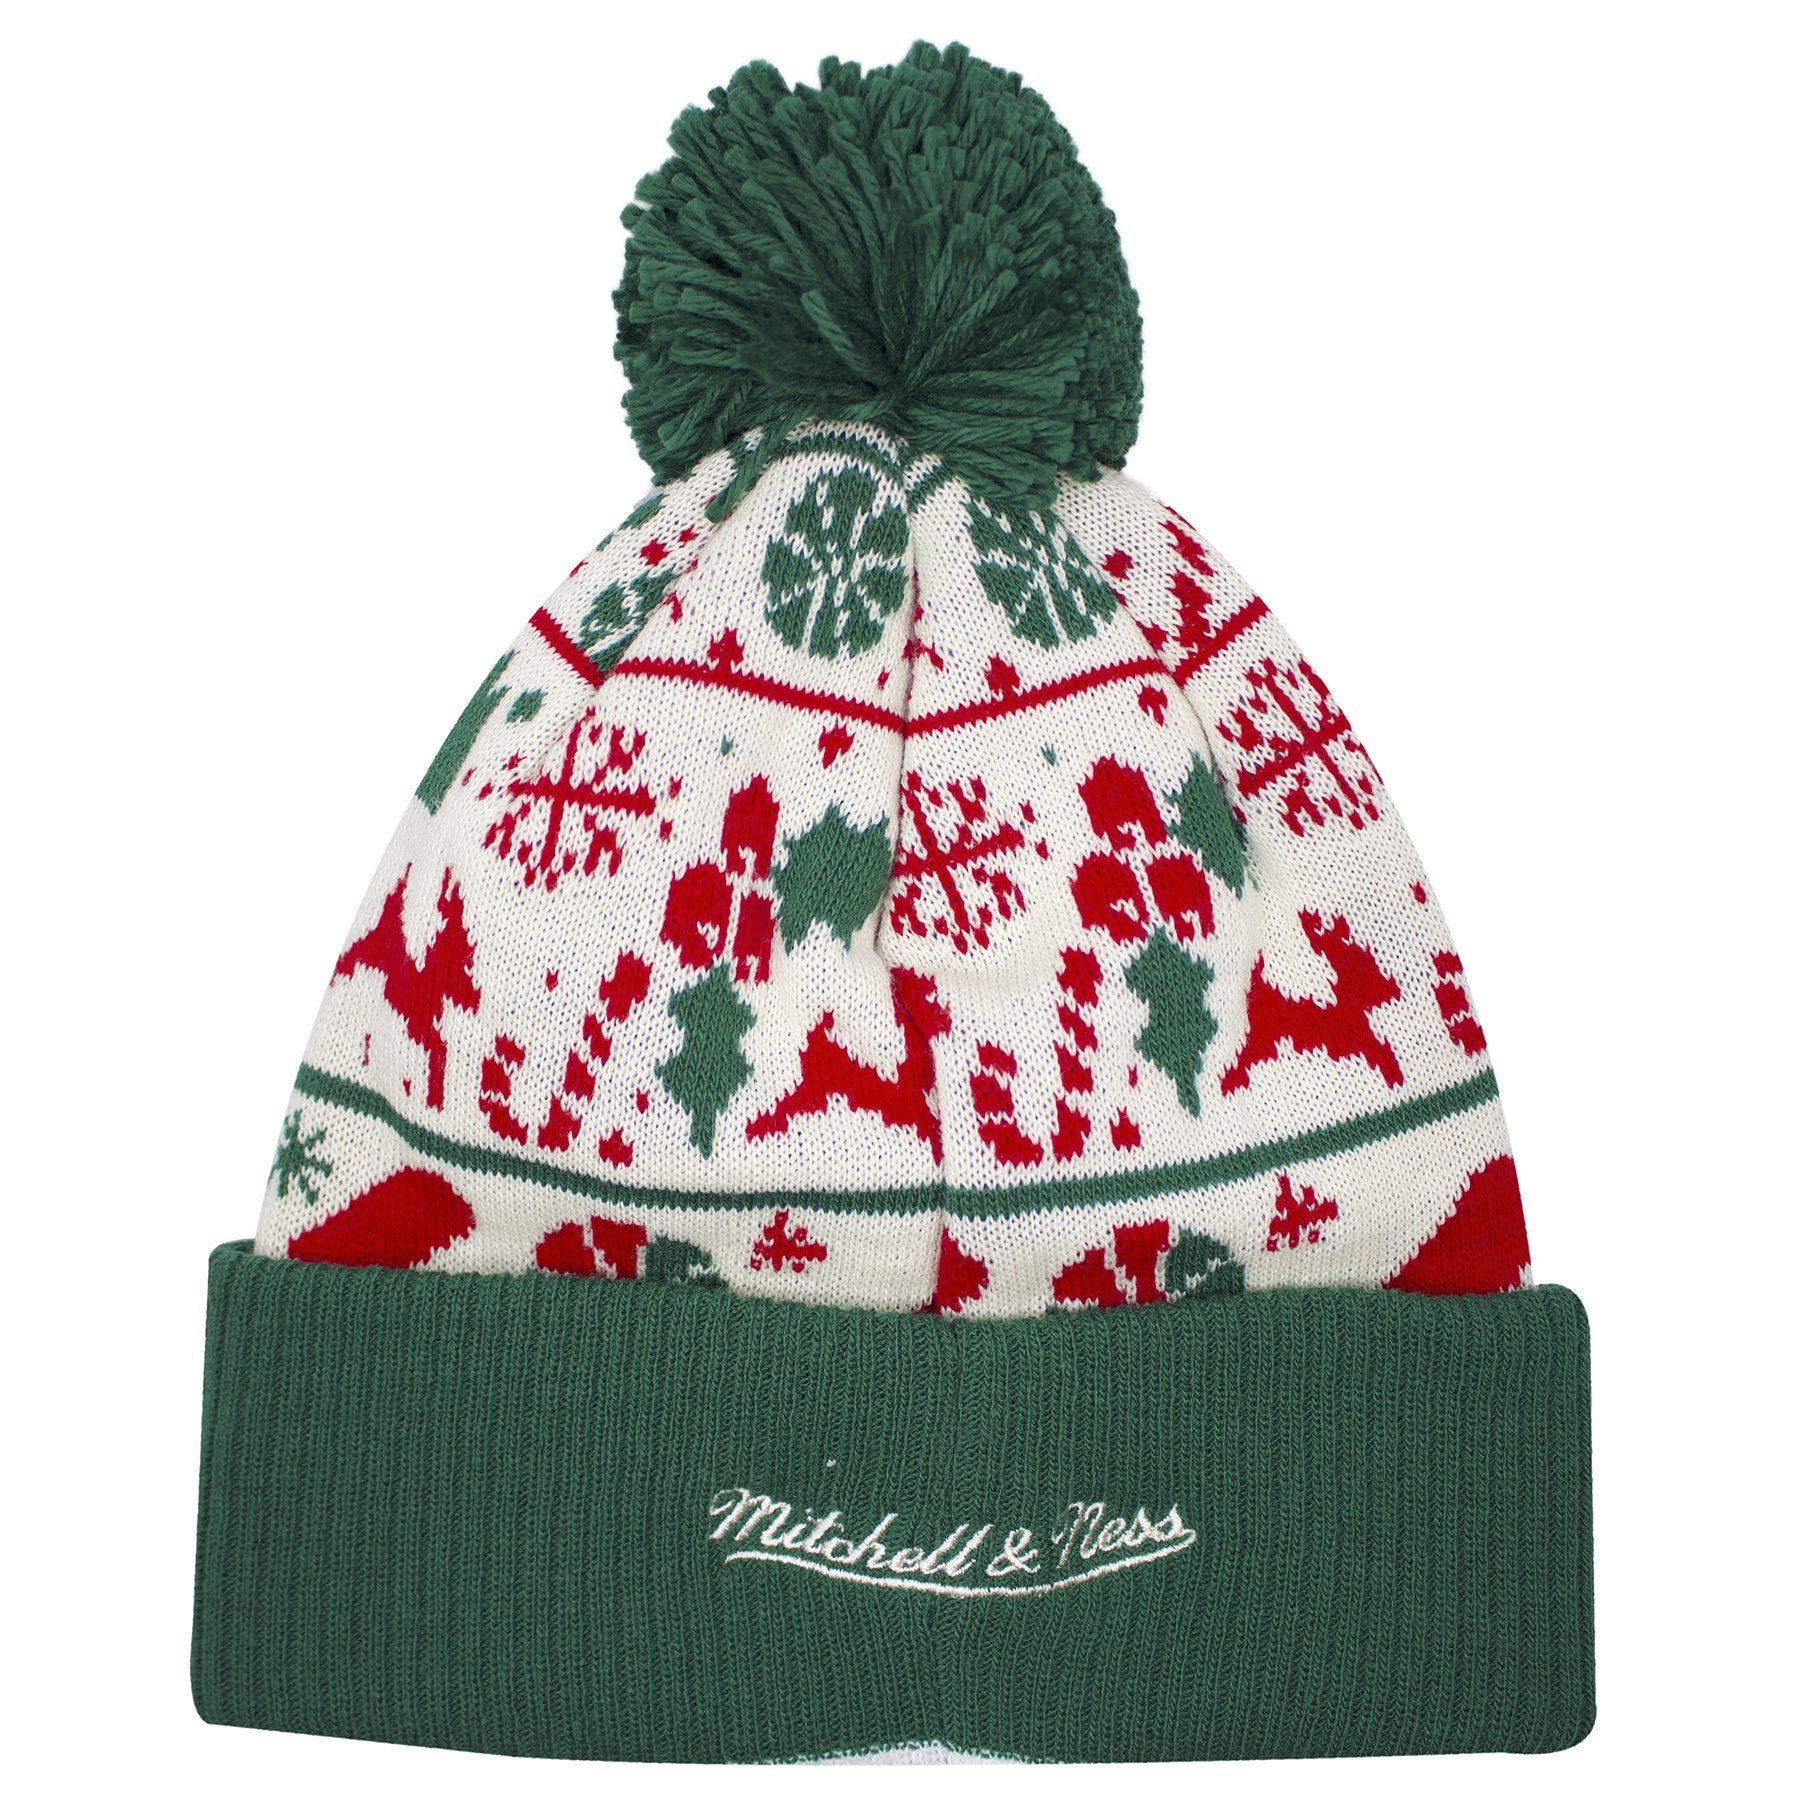 a146a0b7dfc ... on the back of the Ugly Christmas Sweater Philadelphia 76ers winter  beanie is the Mitchell and